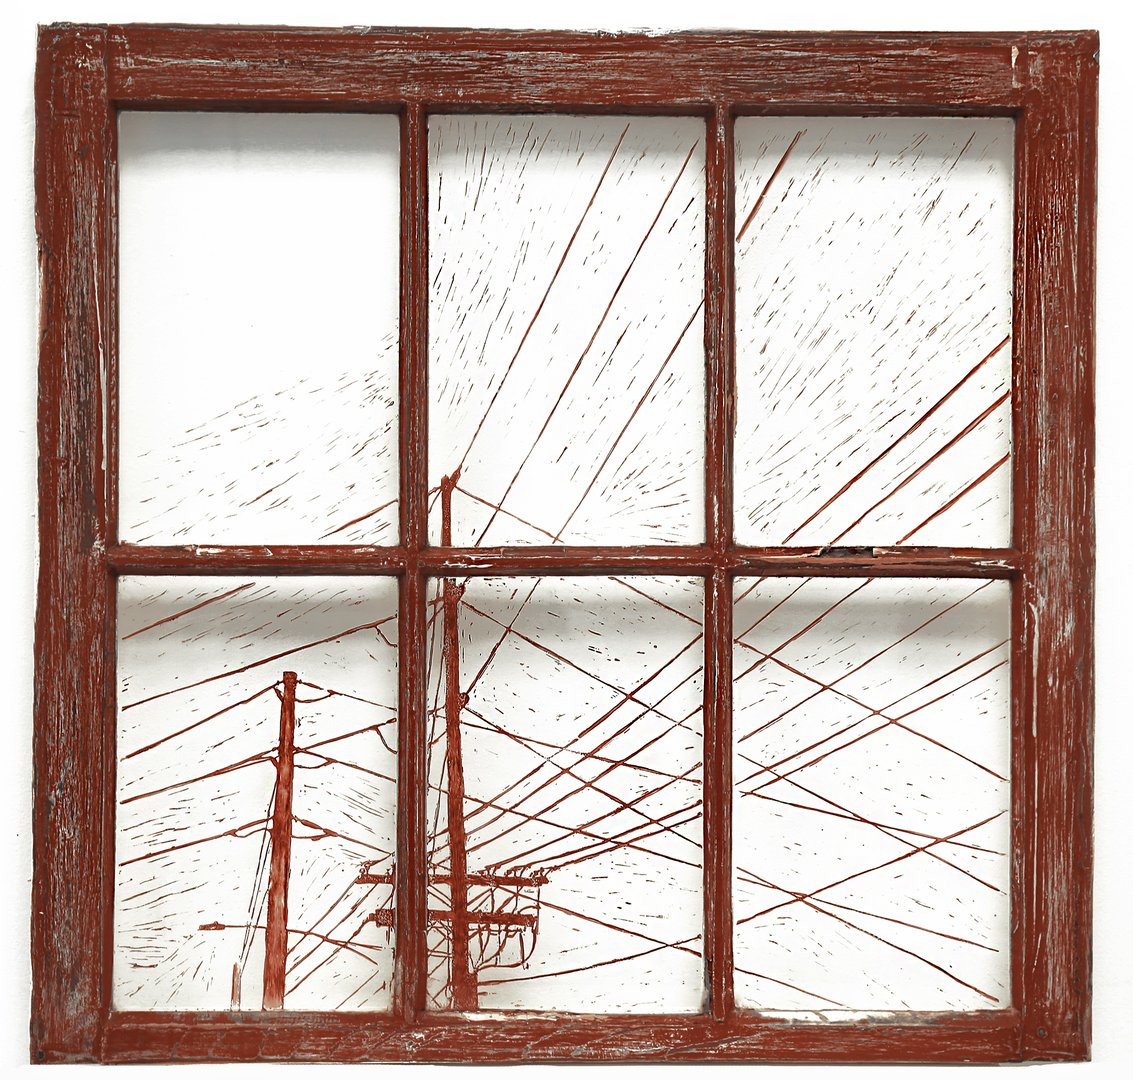 Relief prints of electricity lines on glass windows with red and white.jpg